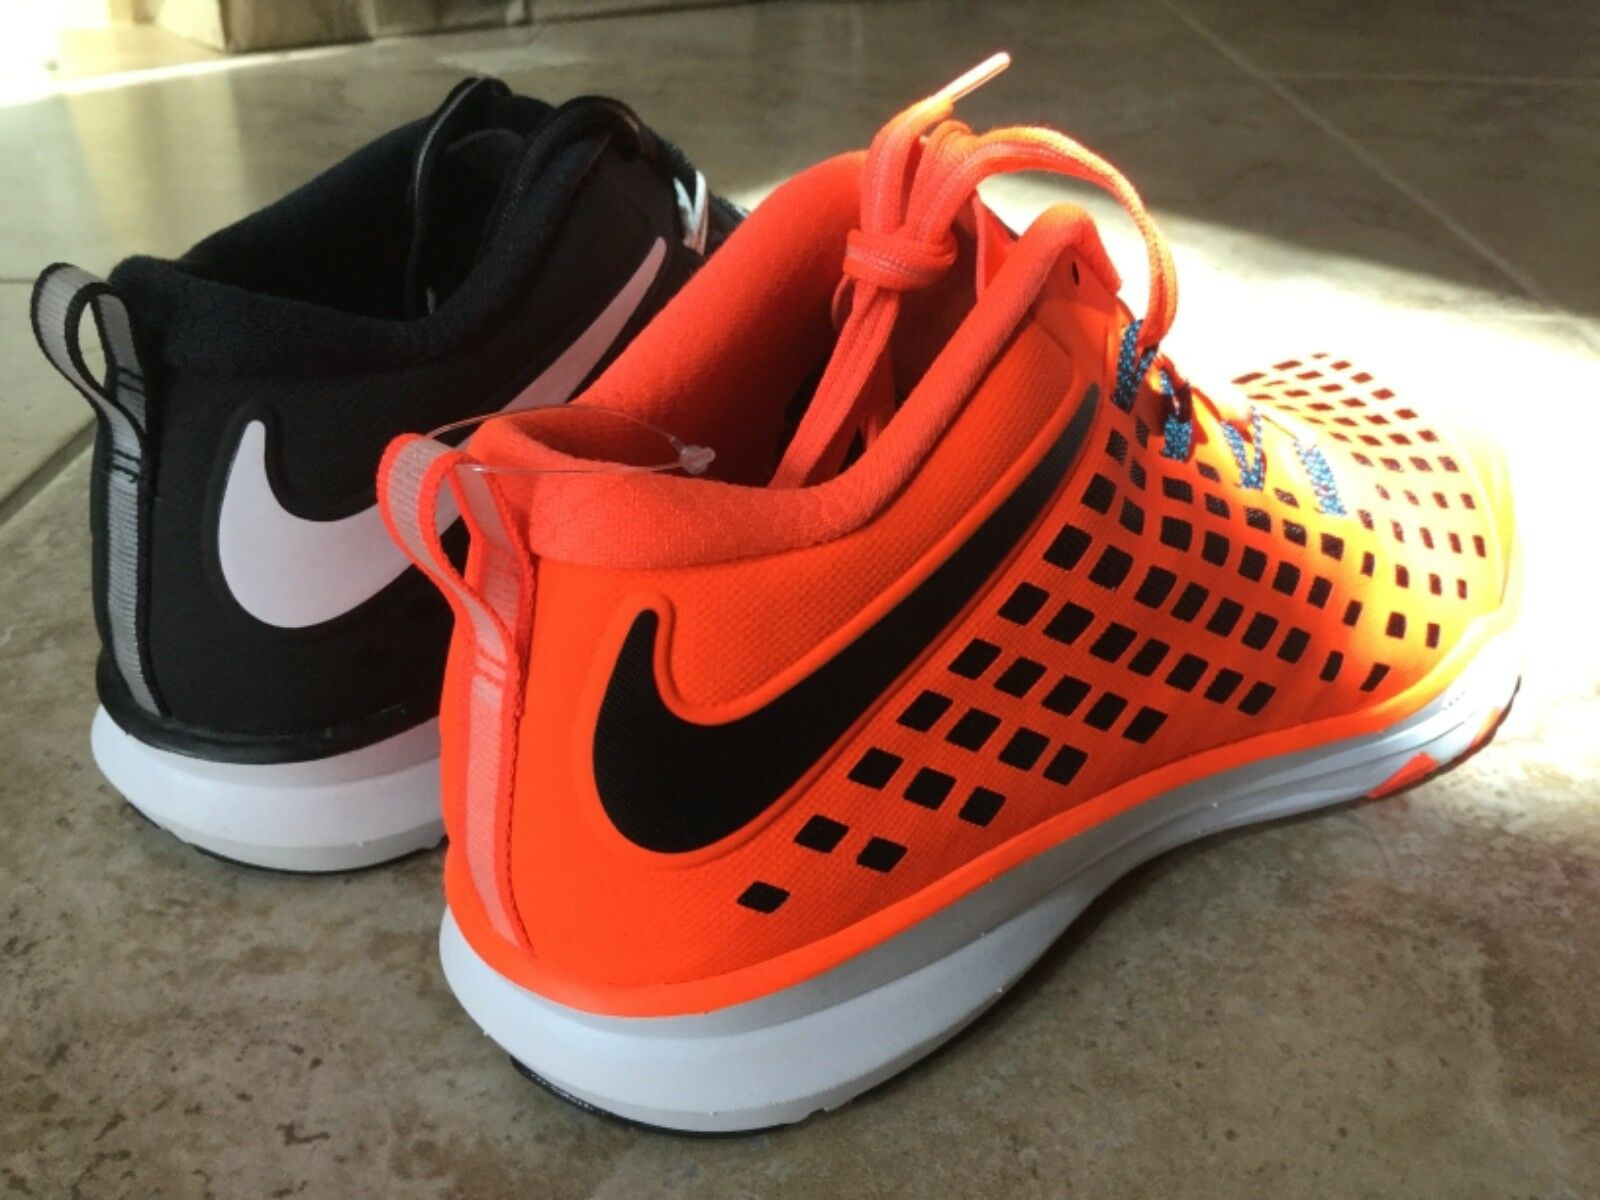 New Nike Train Quick Knows Shoes Mens Sizes Bo Knows Quick Training Running Football Flex 9a6d73